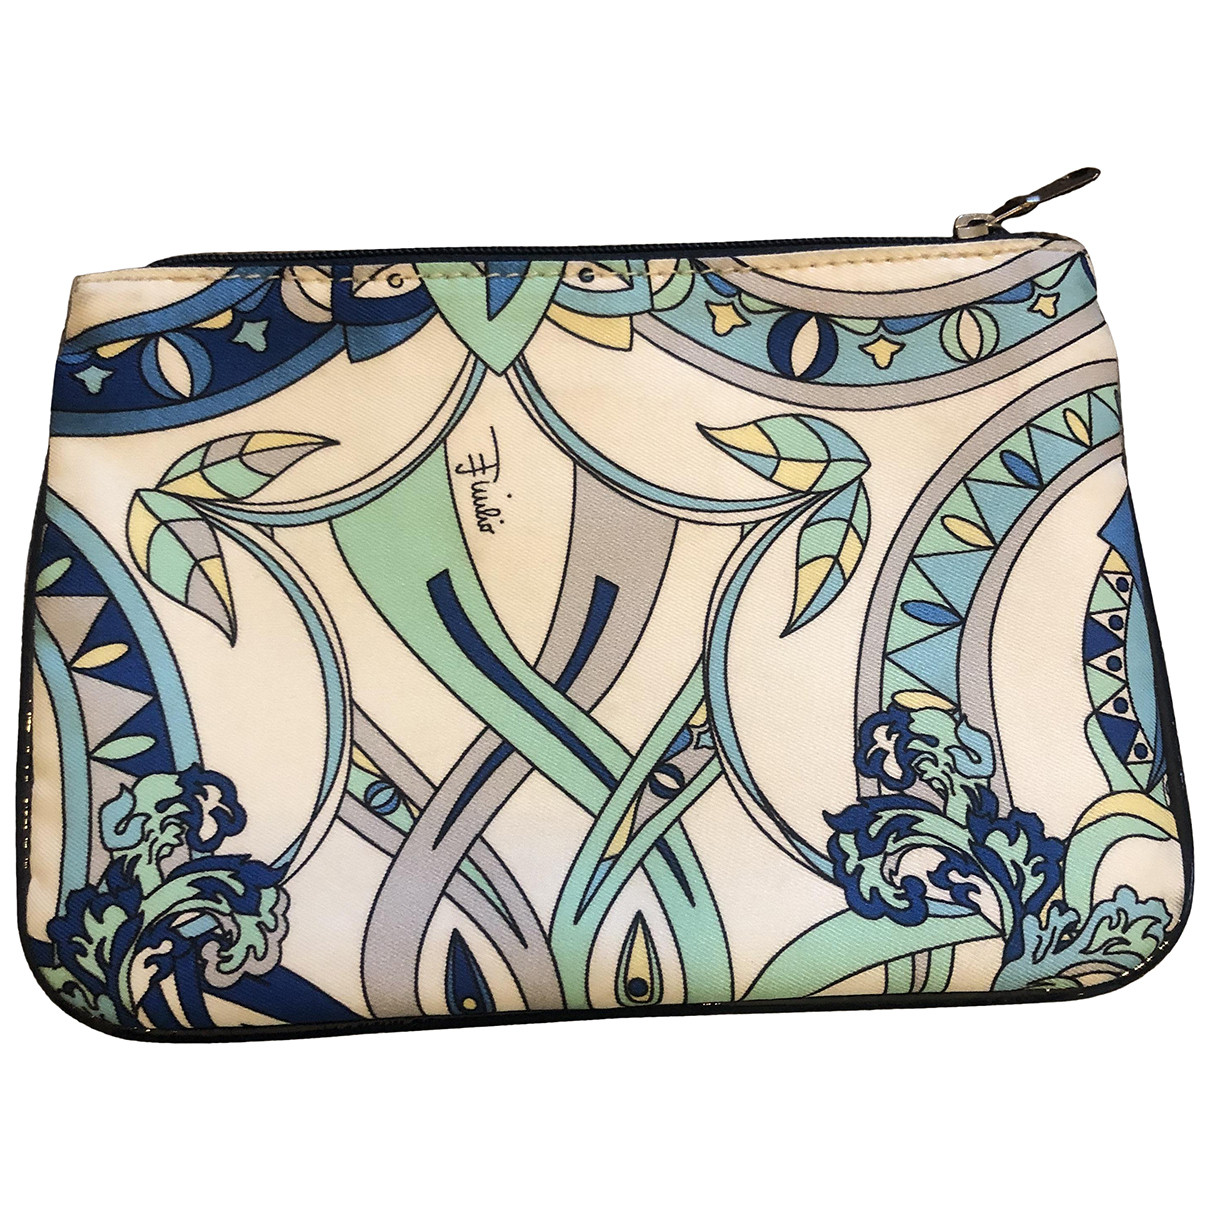 Emilio Pucci N Turquoise Cloth Purses, wallet & cases for Women N